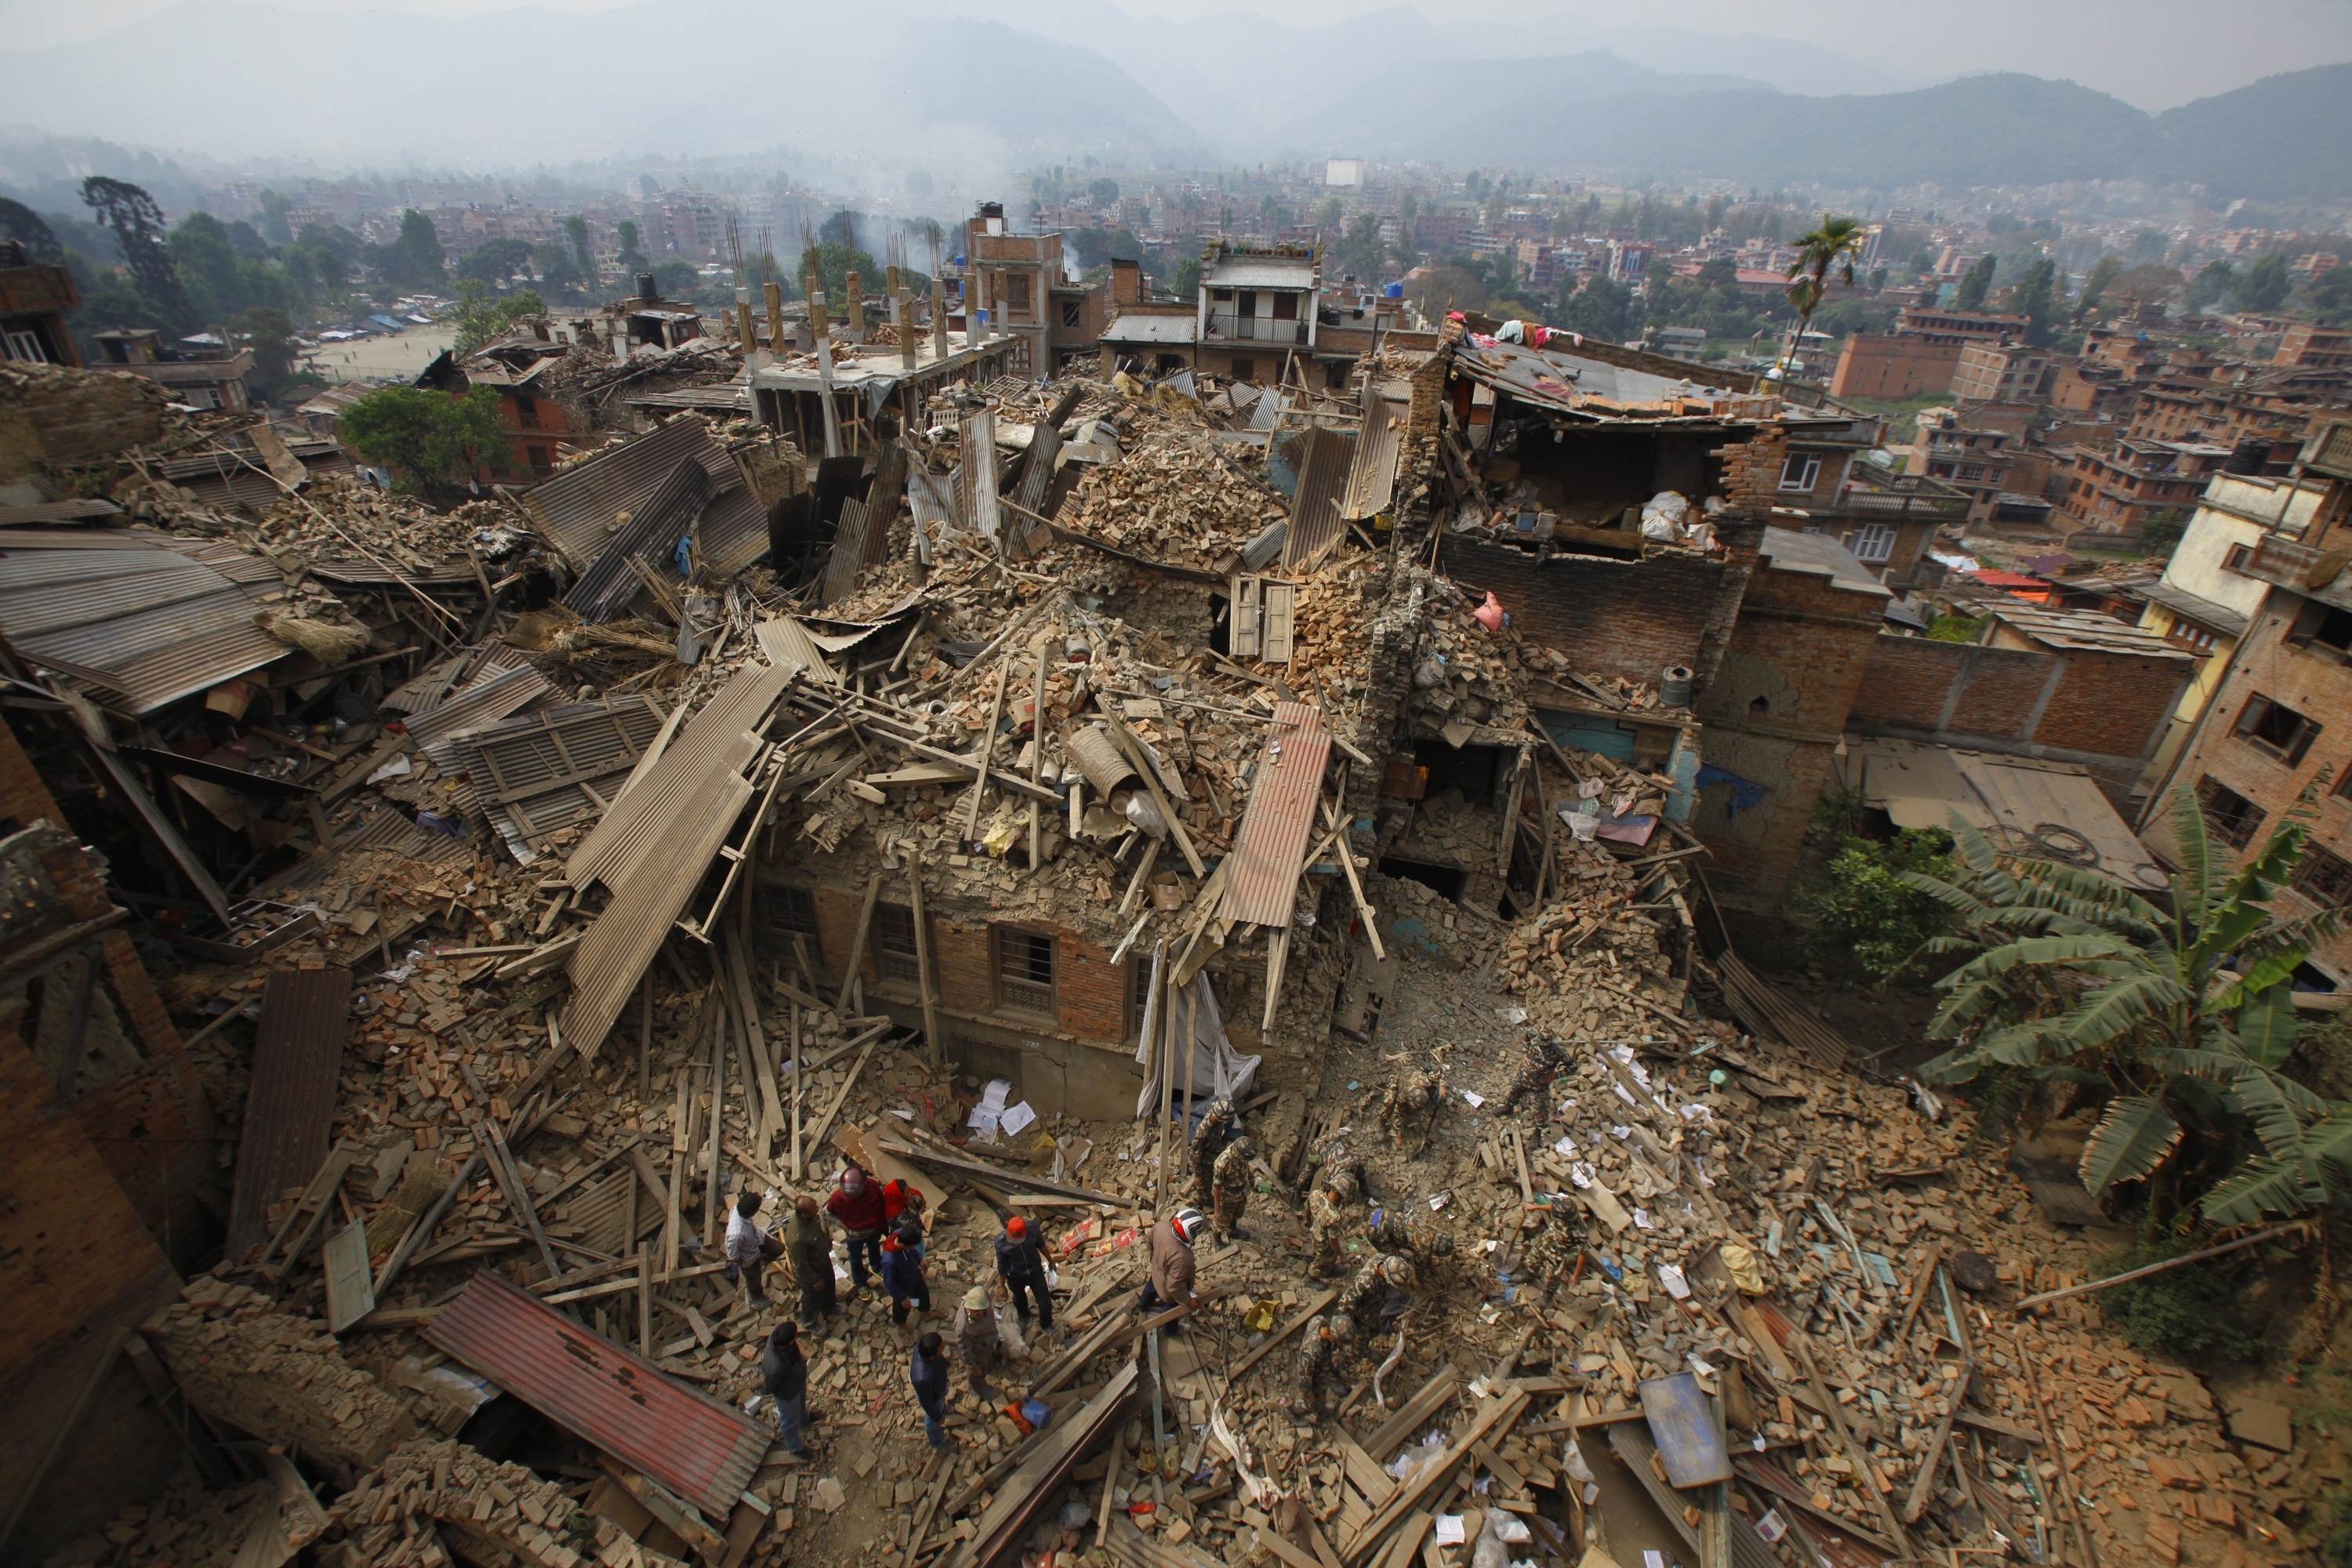 Md. woman works to aid family, other quake survivors in Nepal